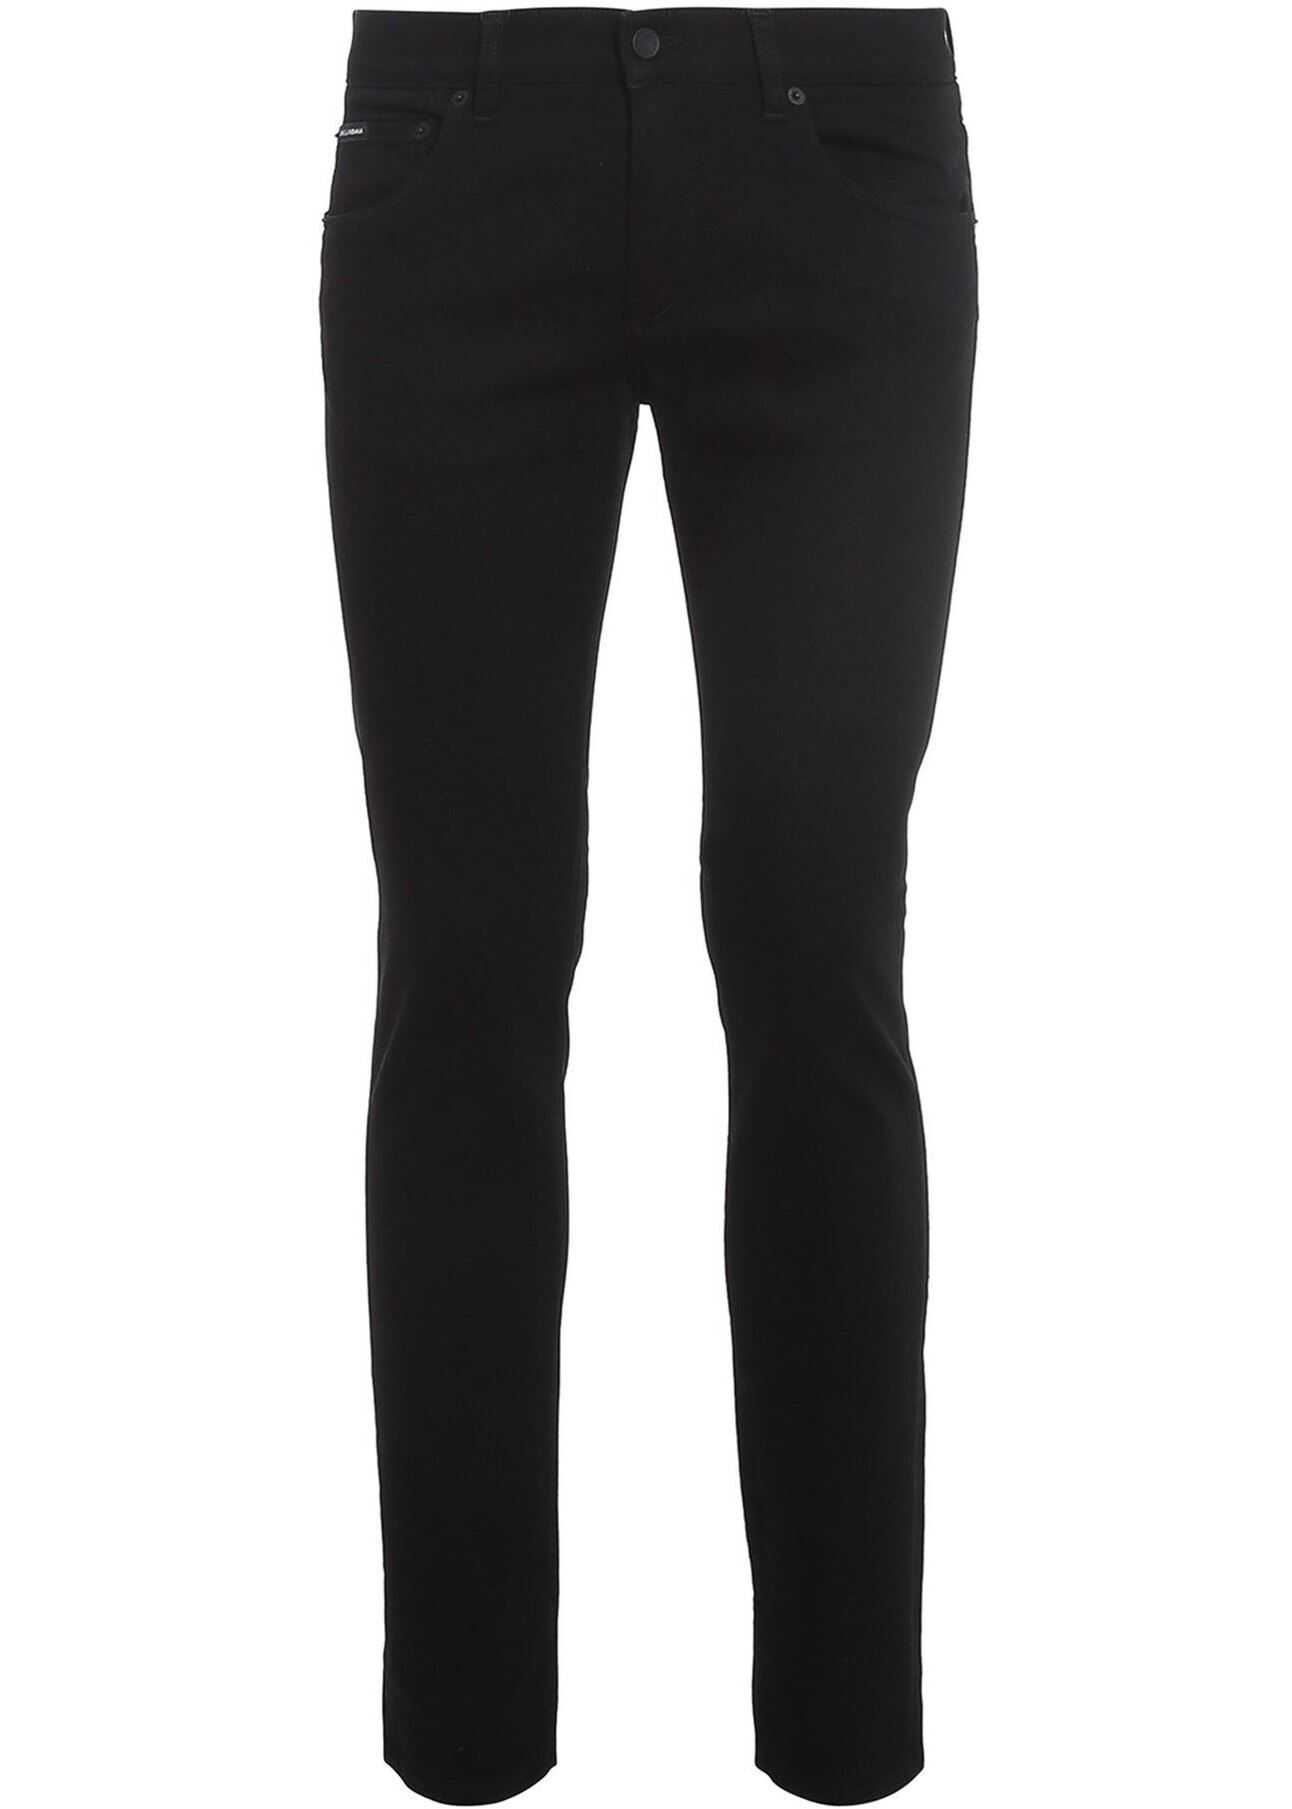 Dolce & Gabbana Black Skinny Jeans Black imagine